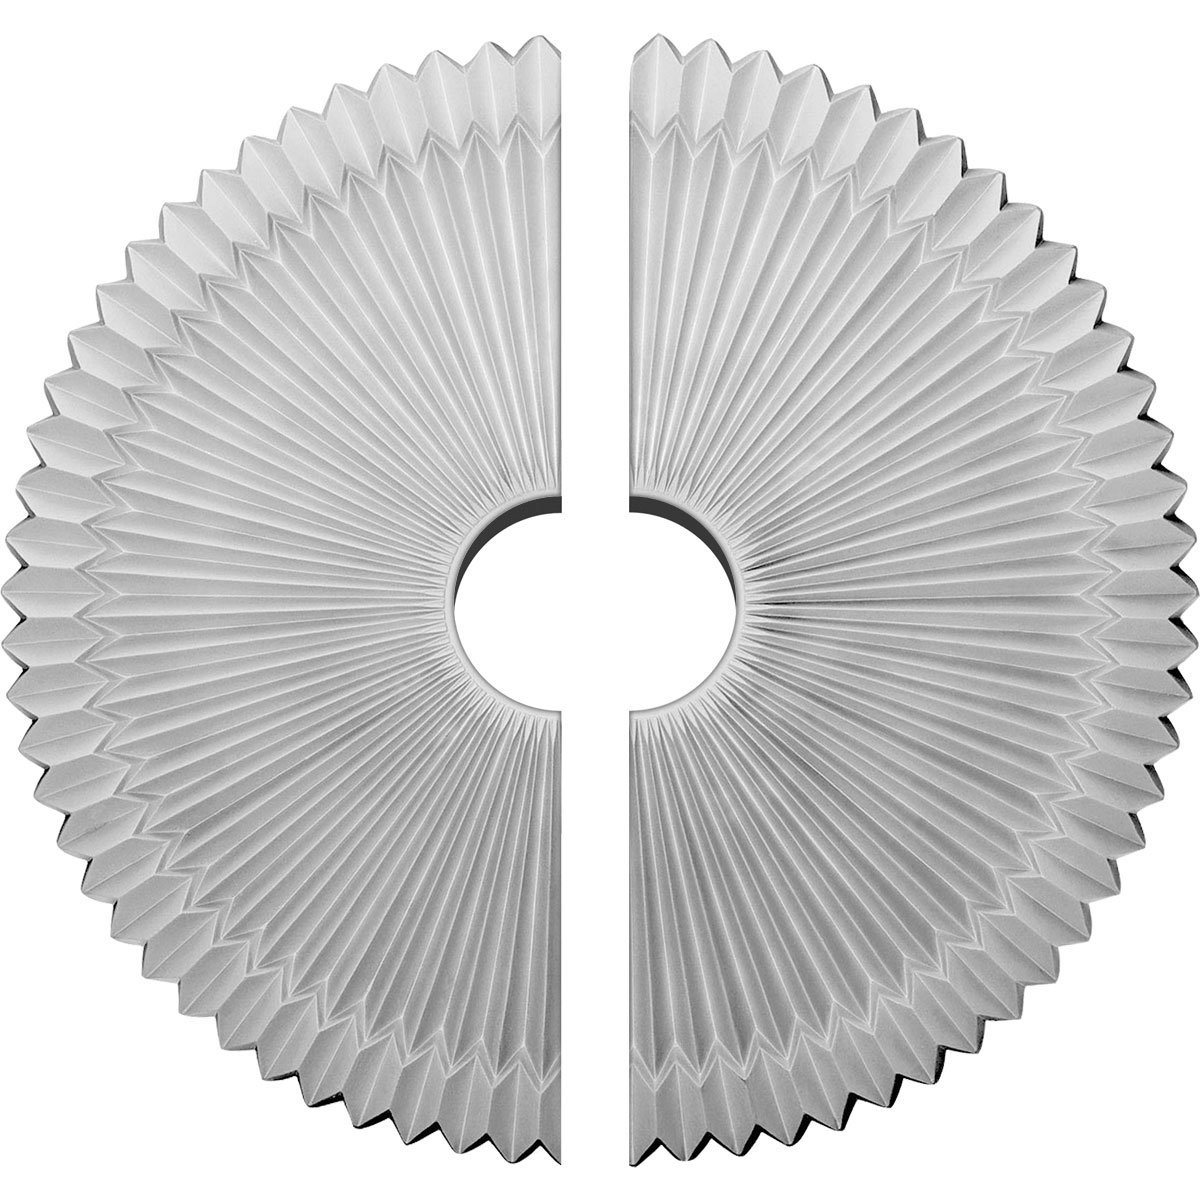 Ekena Millwork CM24SH2-04500 24''OD x 4 1/2''ID x 3''P Shakuras Ceiling Medallion, Two Piece (Fits Canopies up to 5''), Factory Primed White